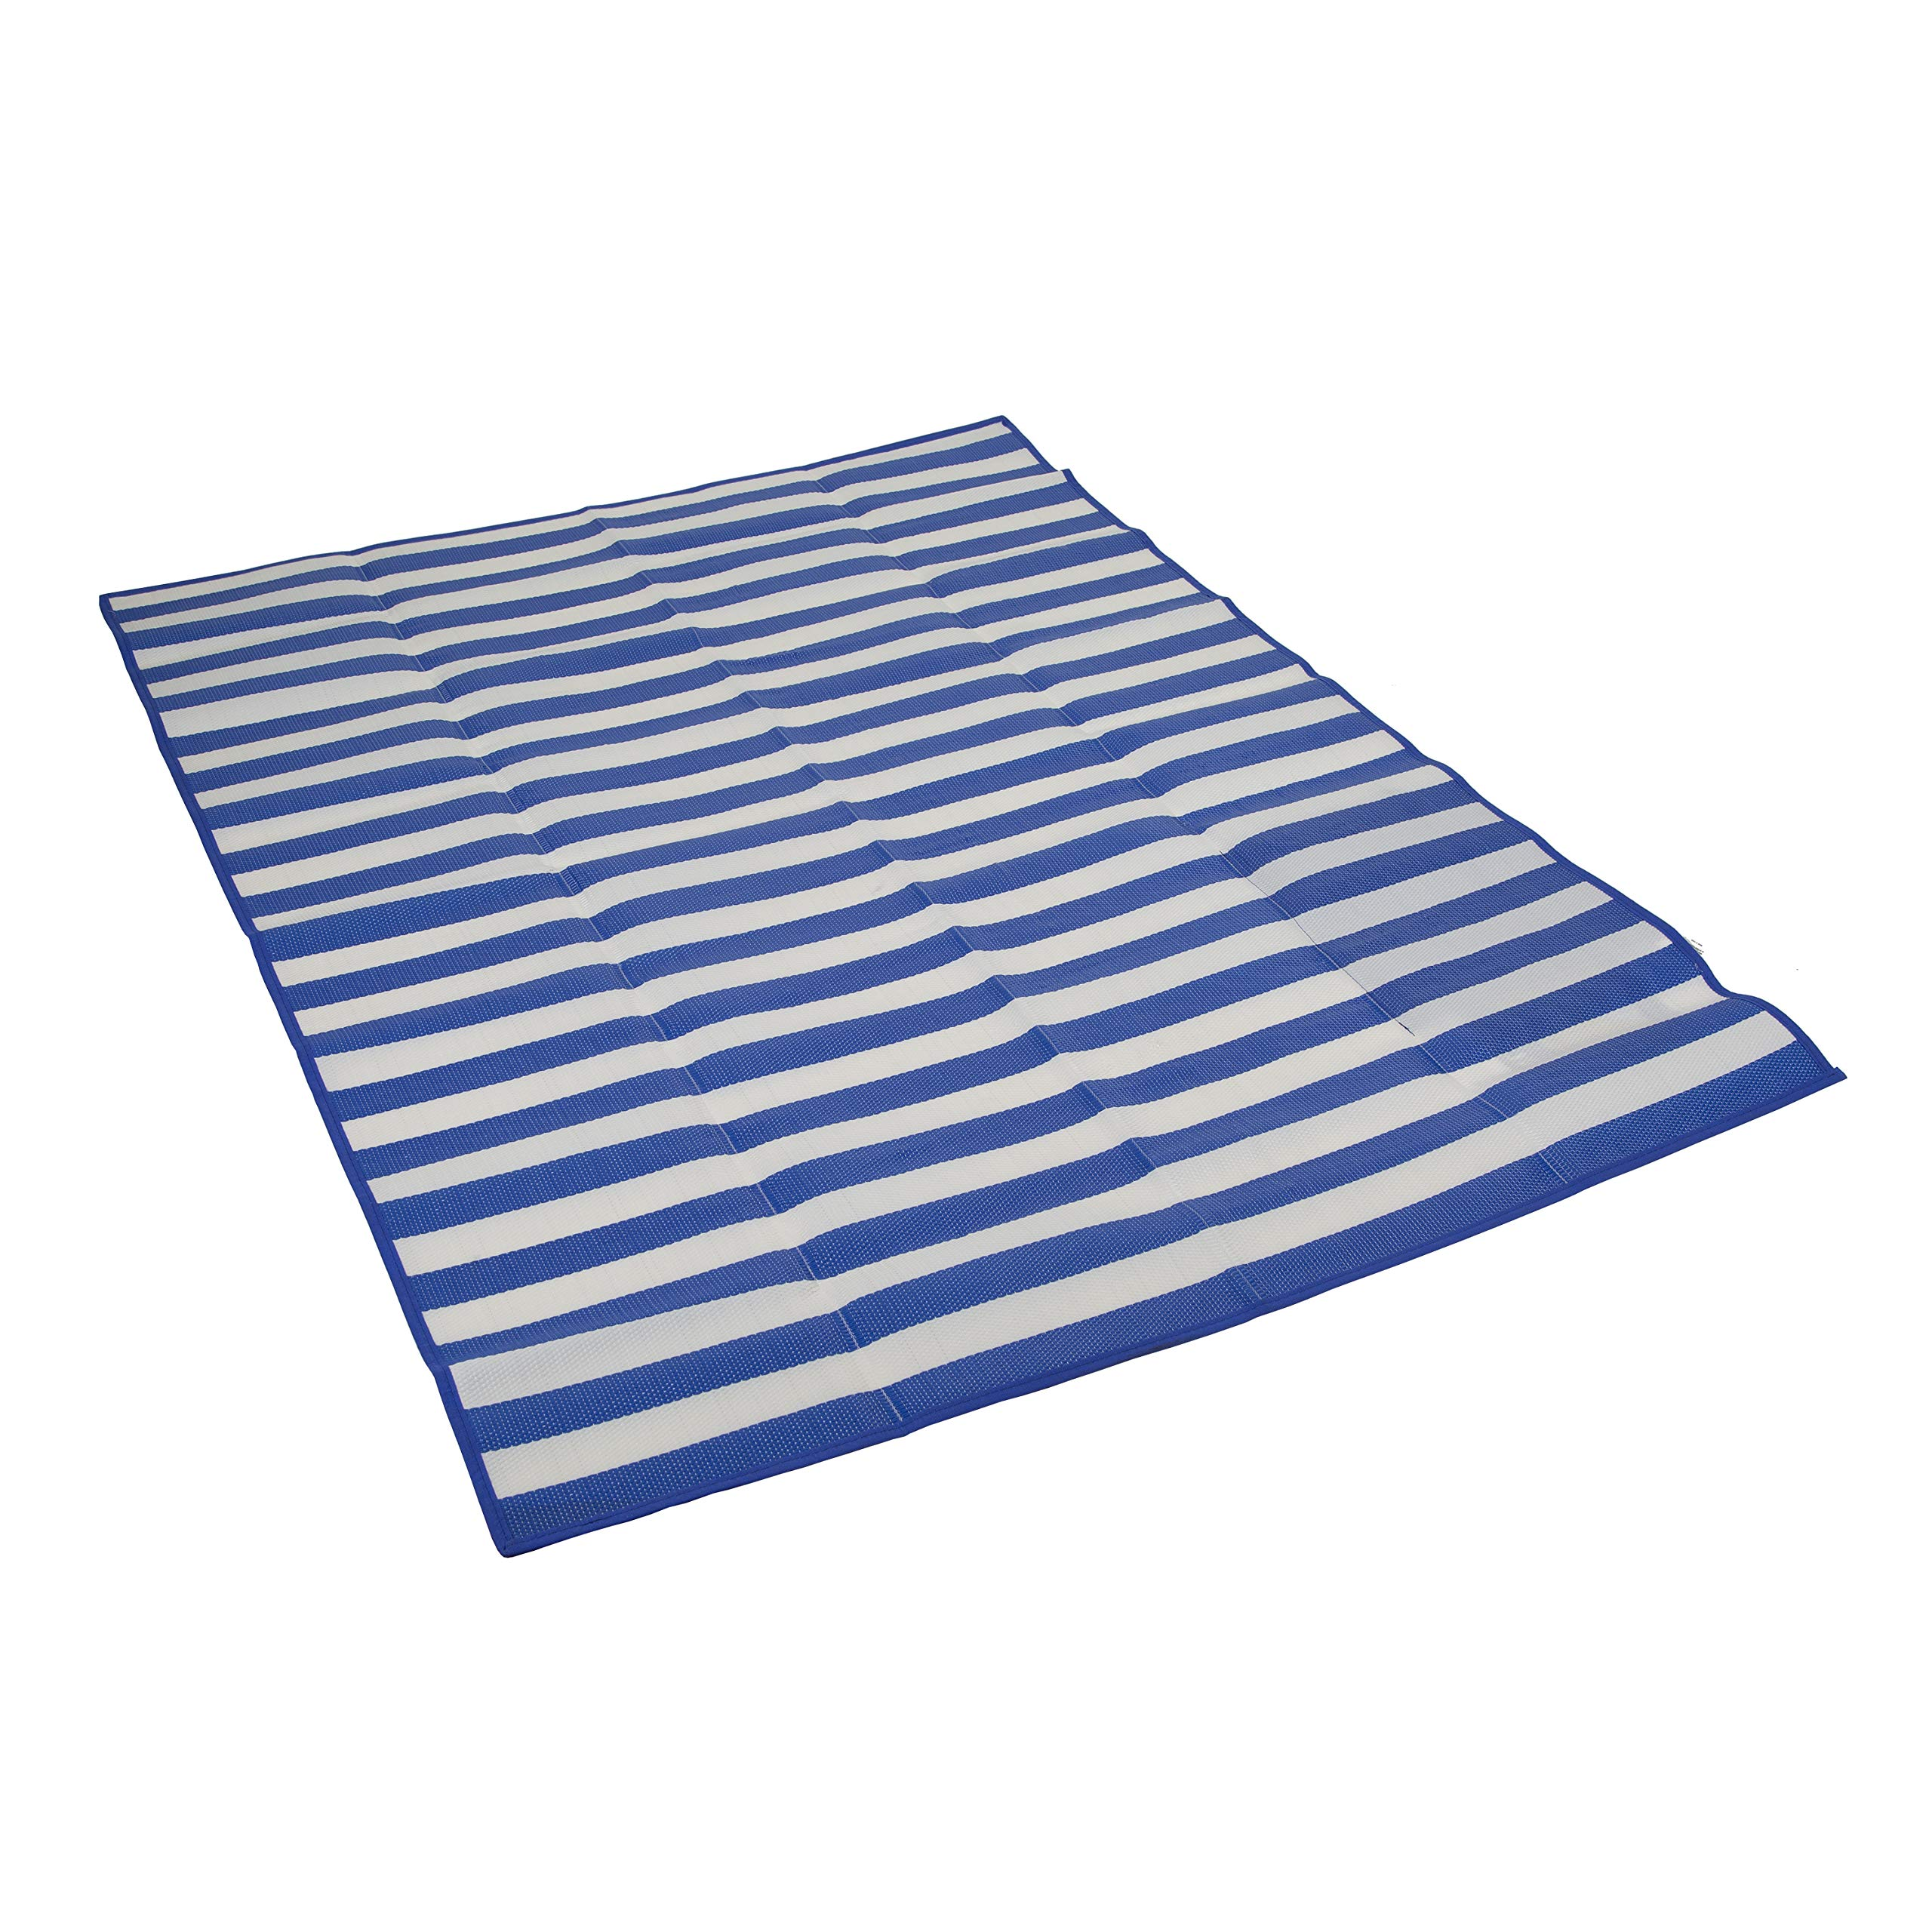 Stansport Tatami Straw Ground Mat Buy Online In Gambia Stansport Products In Gambia See Prices Reviews And Free Delivery Over 3 500 D Desertcart